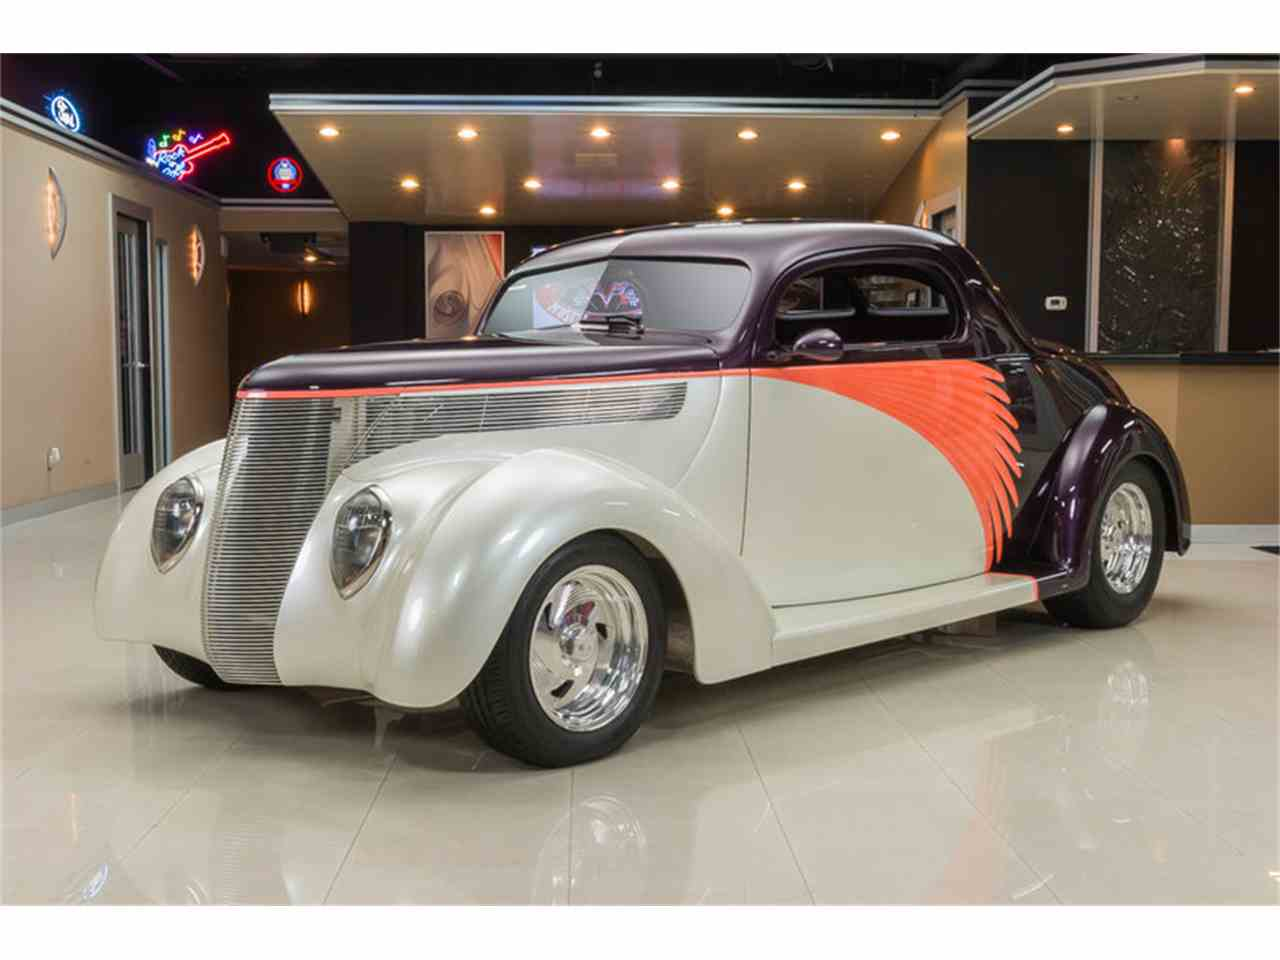 1937 ford 3 window coupe street rod for sale classiccars for 1937 ford 3 window coupe for sale